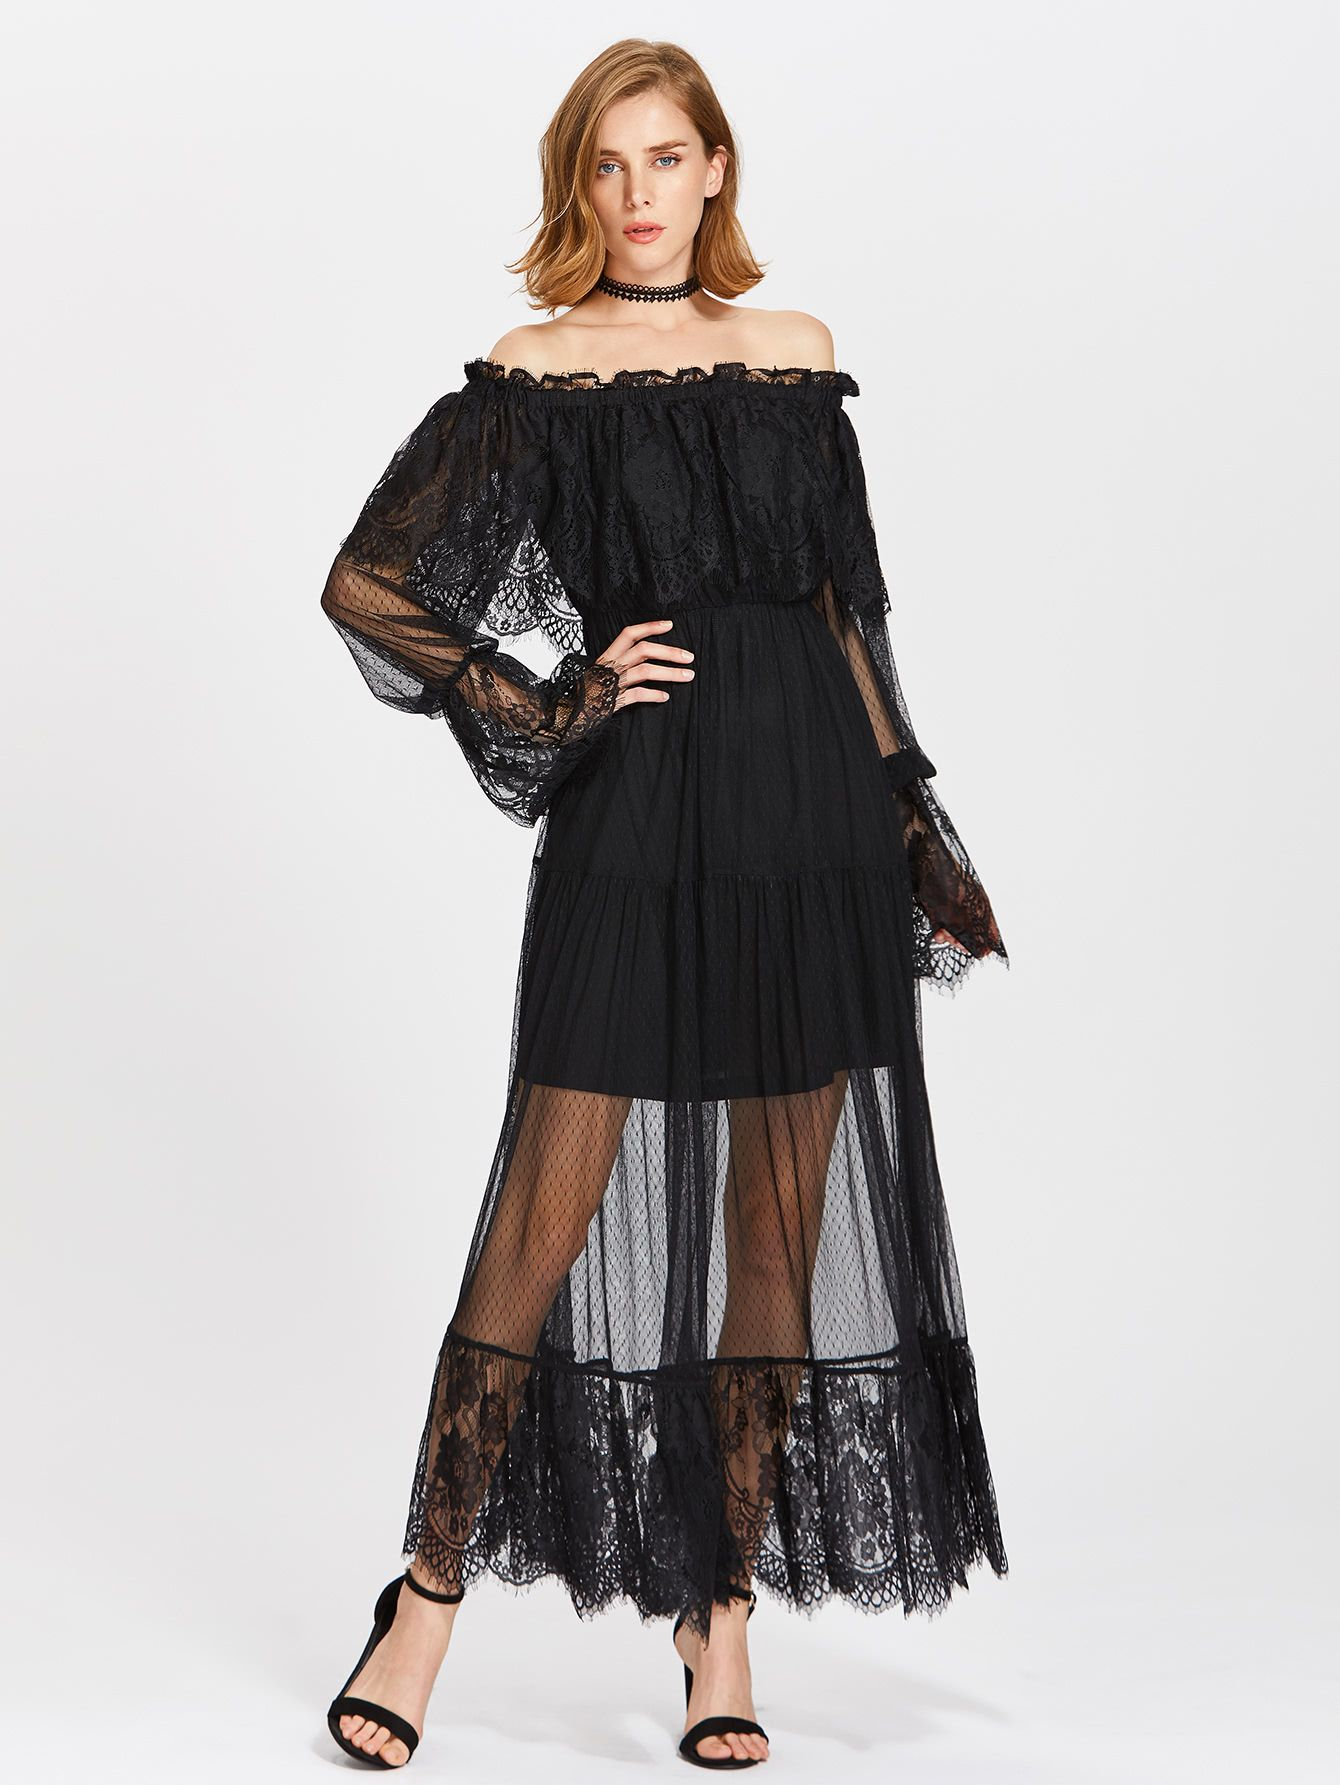 d41213850e Frill Off Shoulder Lace Overlay Tiered Dress. Black Elegant Sexy Vacation Lace  Off the Shoulder Long Sleeve A Line Maxi Ruffle Pleated Plain Fabric has  some ...